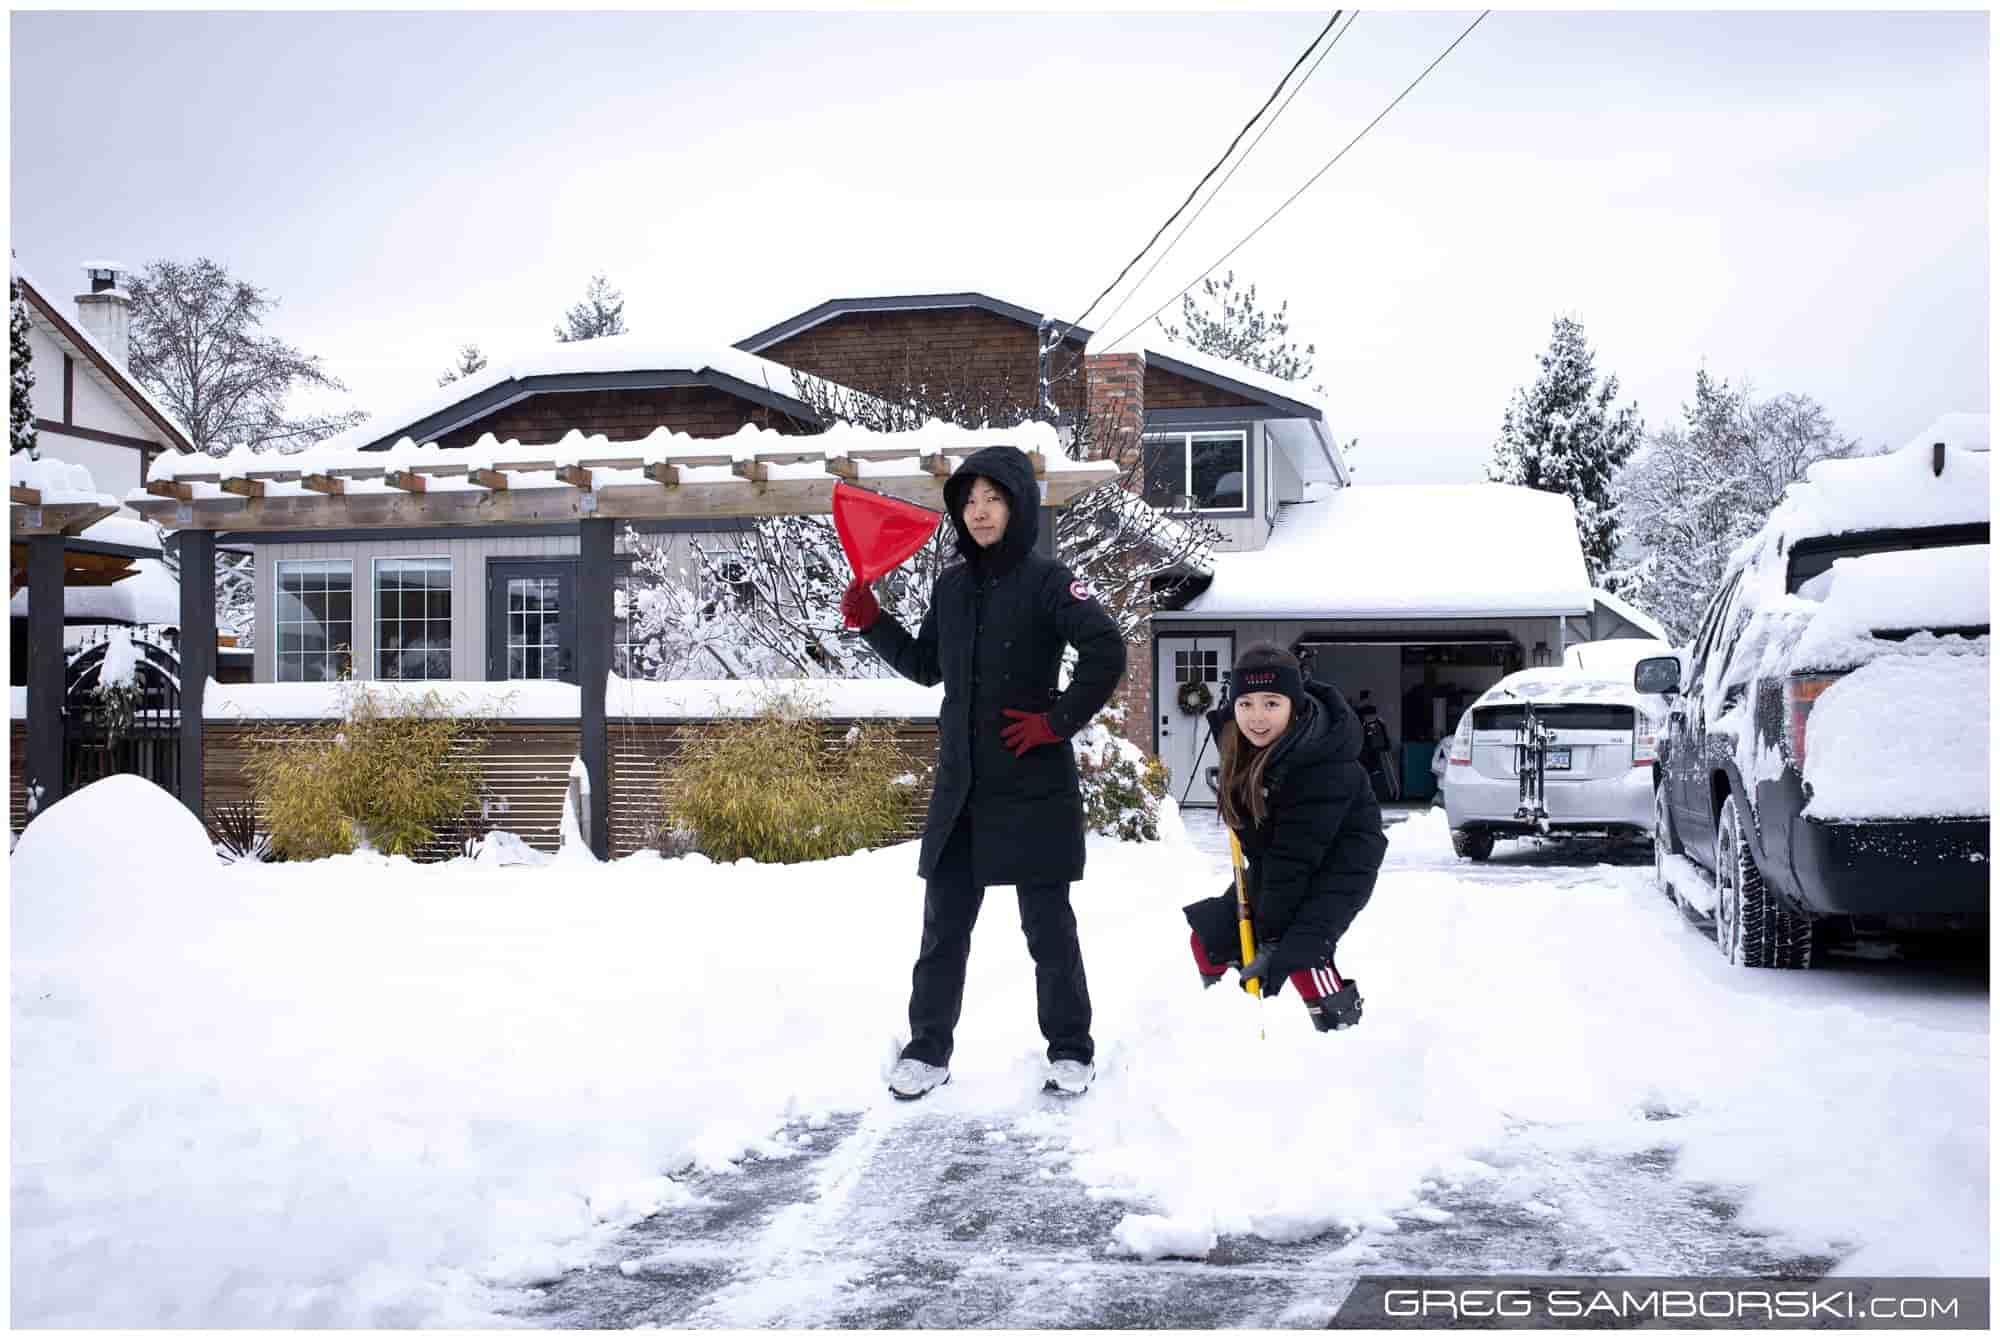 A mother and daughter shovel snow in Victoria, BC.